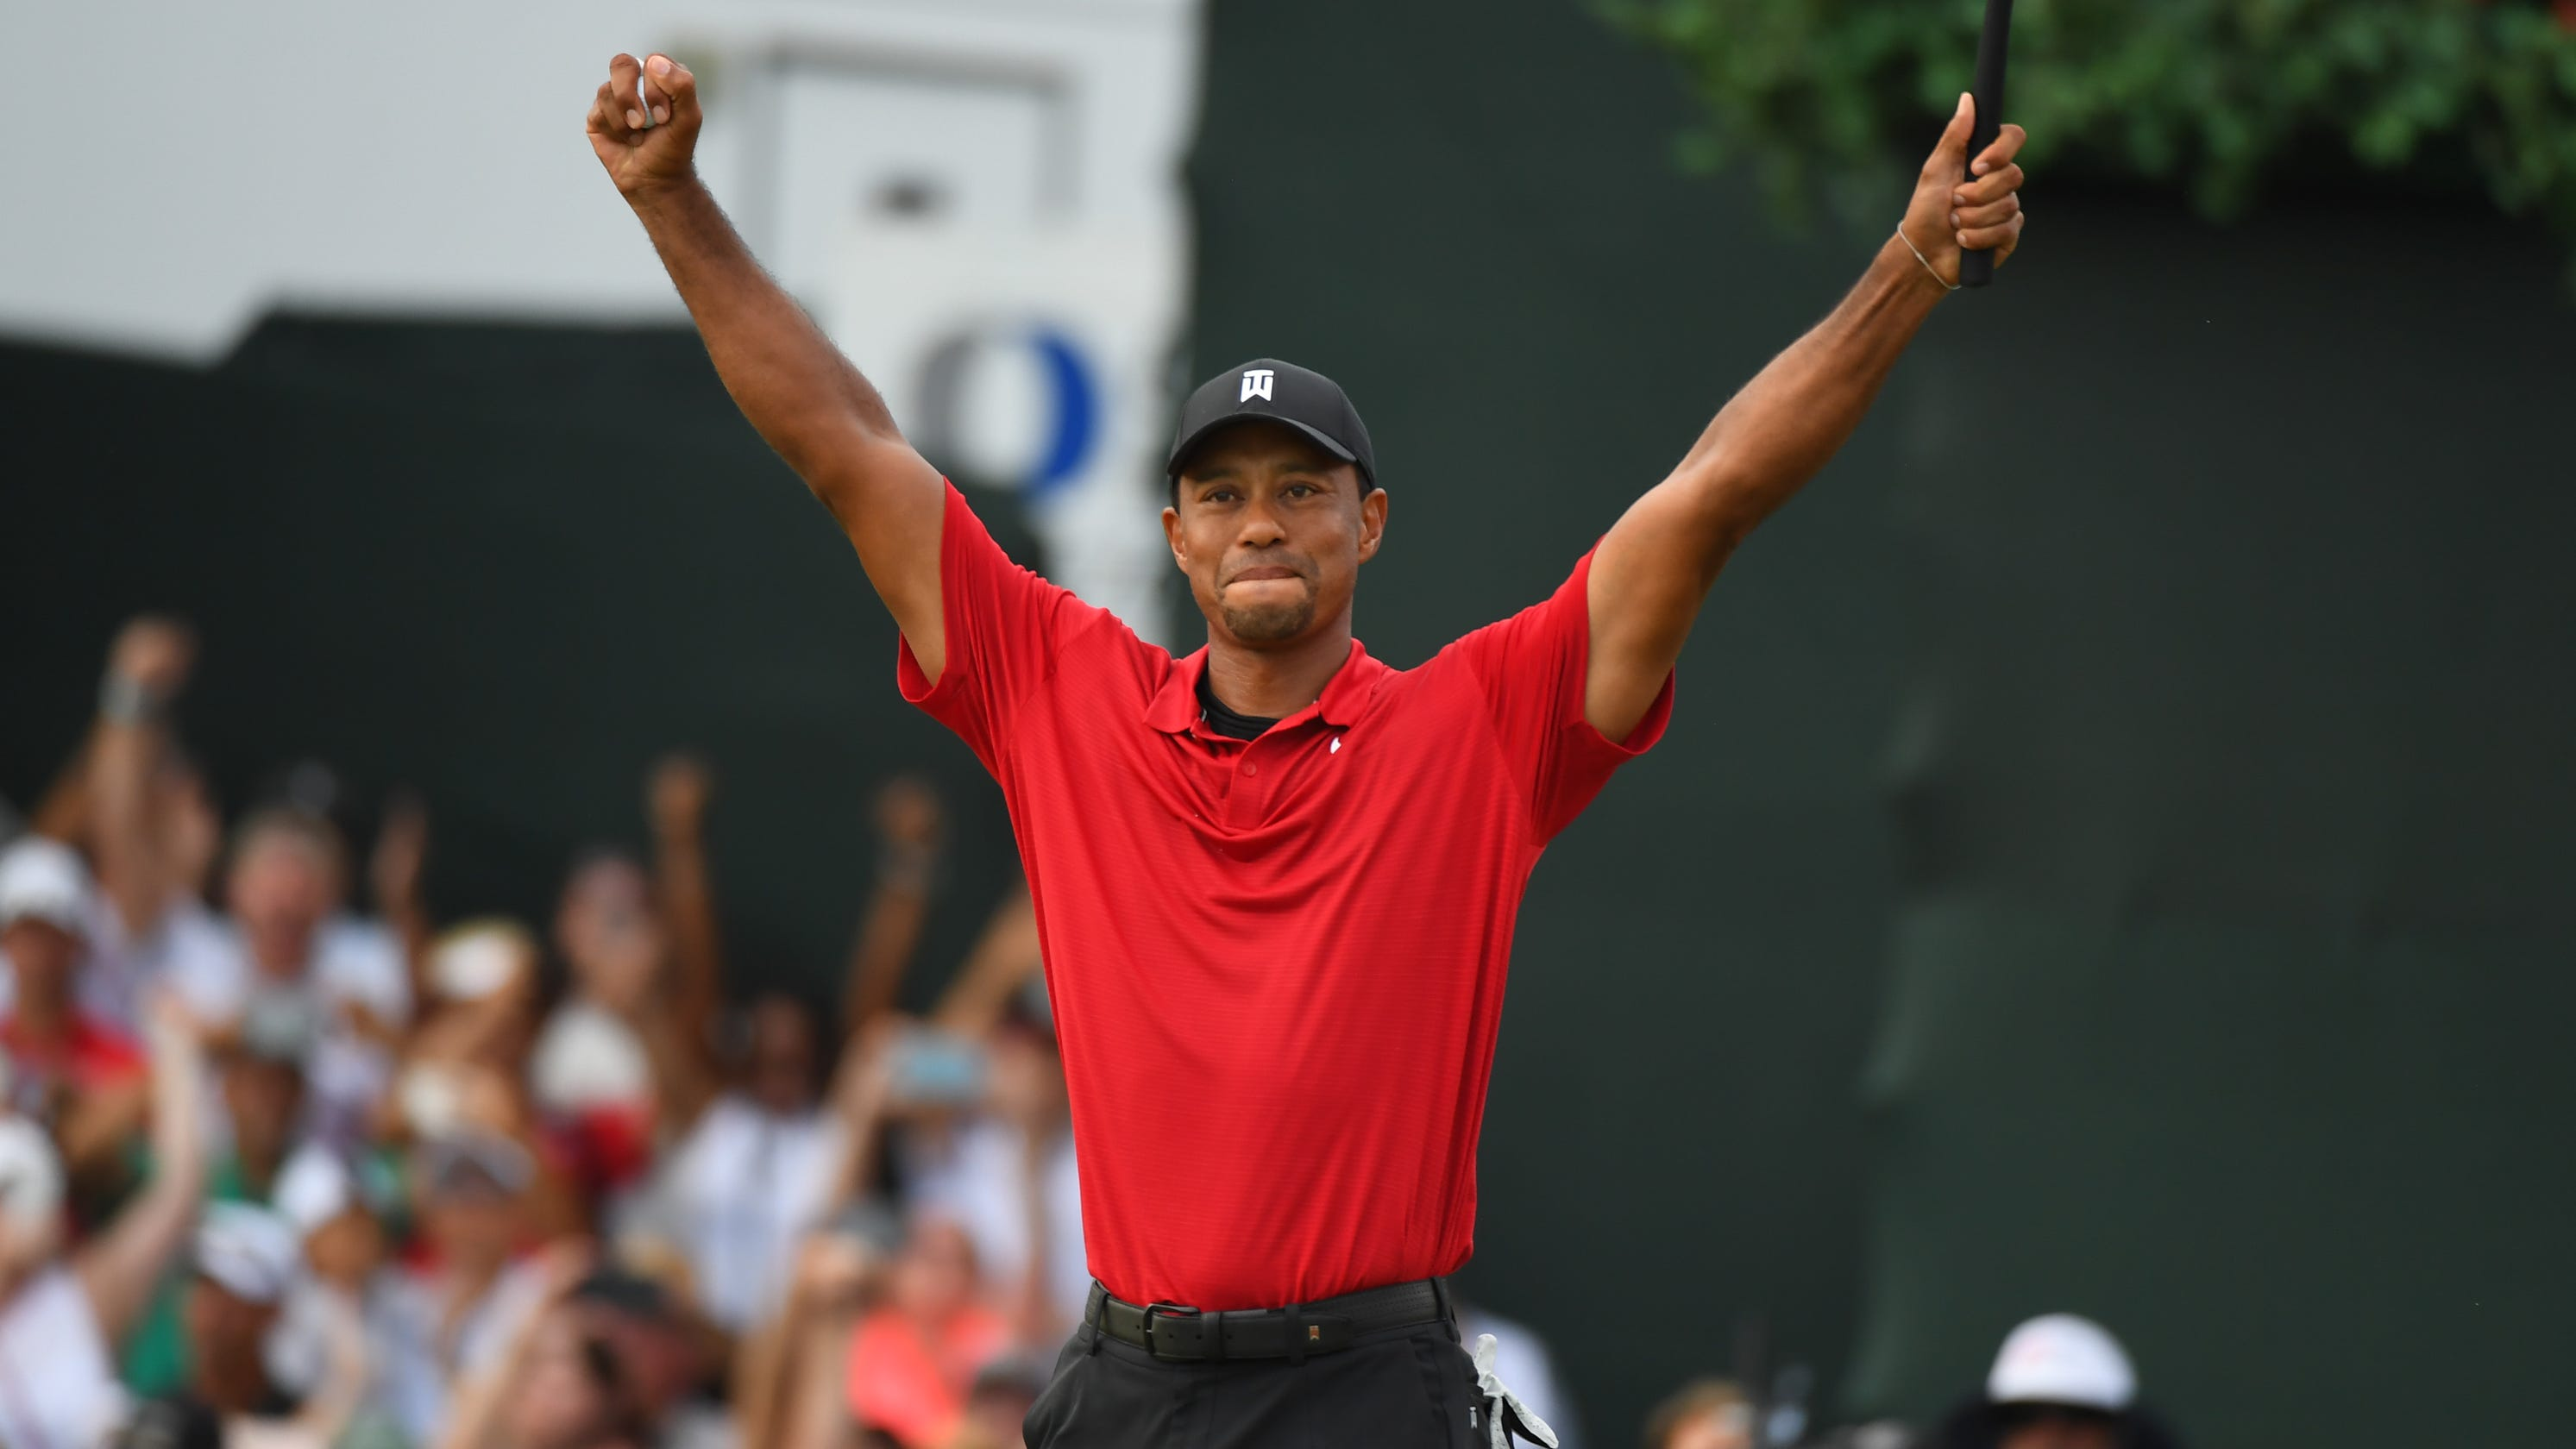 Image result for images of tiger woods winning